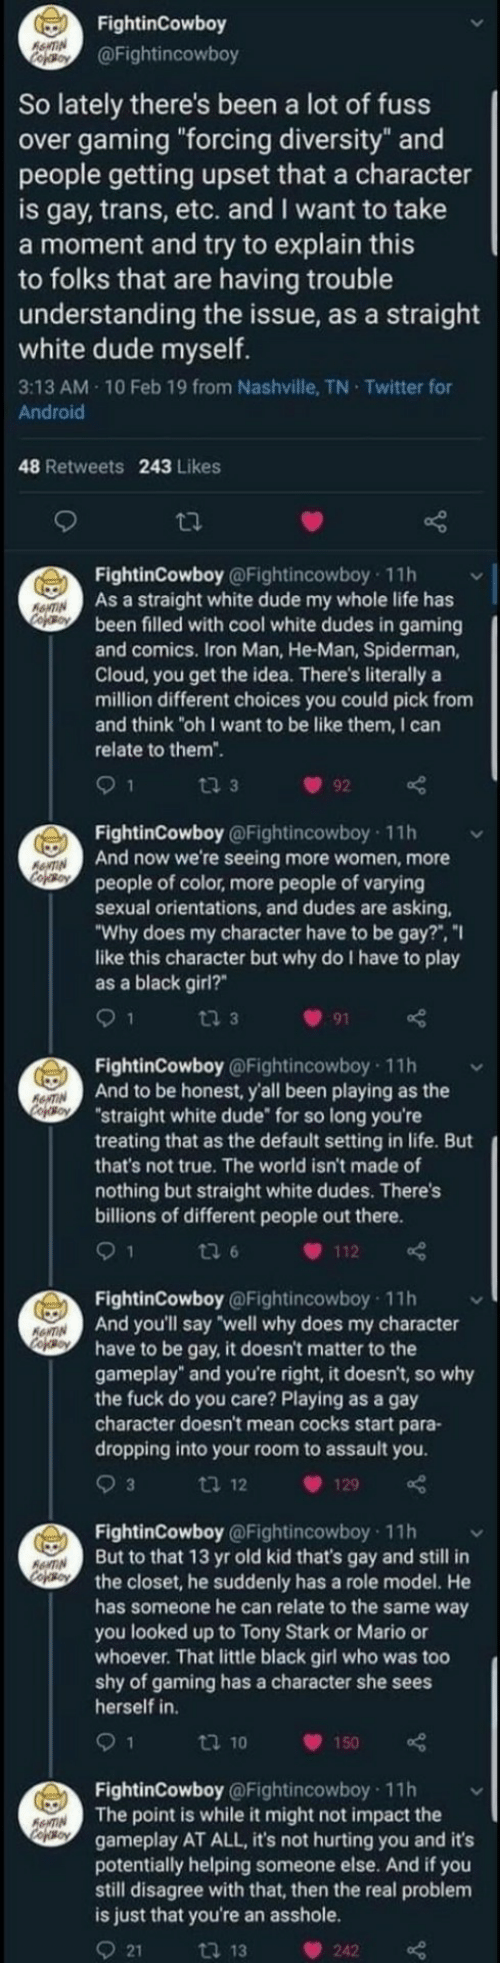 "impact: FightinCowboy  RewTIN  Cefoy  @Fightincowboy  So lately there's been a lot of fuss  over gaming ""forcing diversity"" and  people getting upset that a character  is gay, trans, etc. and I want to take  a moment and try to explain this  to folks that are having trouble  understanding the issue, as a straight  white dude myself.  3:13 AM 10 Feb 19 from Nashville, TN Twitter for  Android  48 Retweets 243 Likes  FightinCowboy @Fightincowboy 11h  As a straight white dude my whole life has  been filled with cool white dudes in gaming  and comics. Iron Man, He-Man, Spiderman,  Cloud, you get the idea. There's literally a  million different choices you could pick from  and think ""oh I want to be like them, I can  ANTIN  Cooy  relate to them"".  ti 3  92  FightinCowboy @Fightincowboy 11h  And now we're seeing more women, more  people of color, more people of varying  sexual orientations, and dudes are asking  ""Why does my character have to be gay?"", ""I  like this character but why do I have to play  as a black girl?  ANTIN  CofoBoy  9 1  ti 3  91  FightinCowboy @Fightincowboy 11h  And to be honest, y'all been playing as the  ""straight white dude for so long you're  treating that as the default setting in life. But  that's not true. The world isn't made of  RNTIN  CopOBoY  nothing but straight white dudes. There's  billions of different people out there.  1  ti 6  112  FightinCowboy @Fightincowboy 11h  And you'll say well why does my character  have to be gay, it doesn't matter to the  gameplay"" and you're right, it doesn't, so why  the fuck do you care? Playing as a gay  character doesn't mean cocks start para-  dropping into your room to assault you  ANTIN  cofeo  3  ti 12  129  FightinCowboy @Fightincowboy 11h  But to that 13 yr old kid that's gay and still in  the closet, he suddenly has a role model. He  has someone he can relate to the same way  you looked up to Tony Stark or Mario or  whoever. That little black girl who was too  shy of gaming has a character she sees  herself in  AANTIN  Cojso  9 1  t 10  150  FightinCowboy @Fightincowboy 11h  The point is while it might not impact the  gameplay AT ALL, it's not hurting you and it's  potentially helping someone else. And if you  still disagree with that, then the real problem  is just that you're an asshole.  AeNTIN  Cofeso  21  ti 13  242"